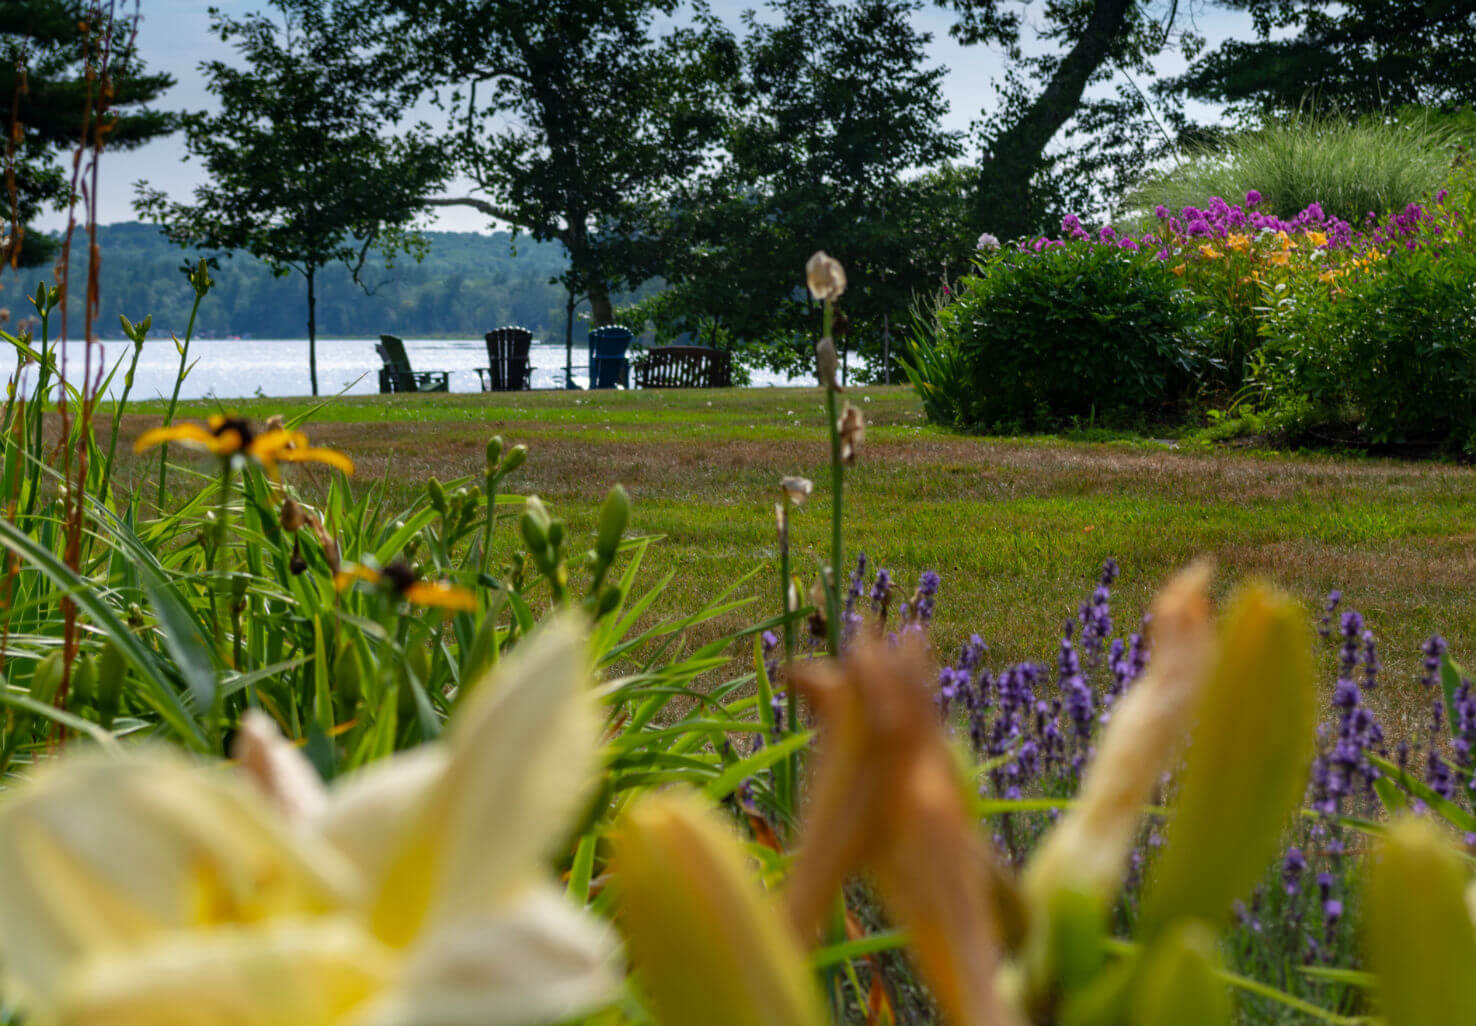 Flowers and grassy path in the Wolf Cove gardens